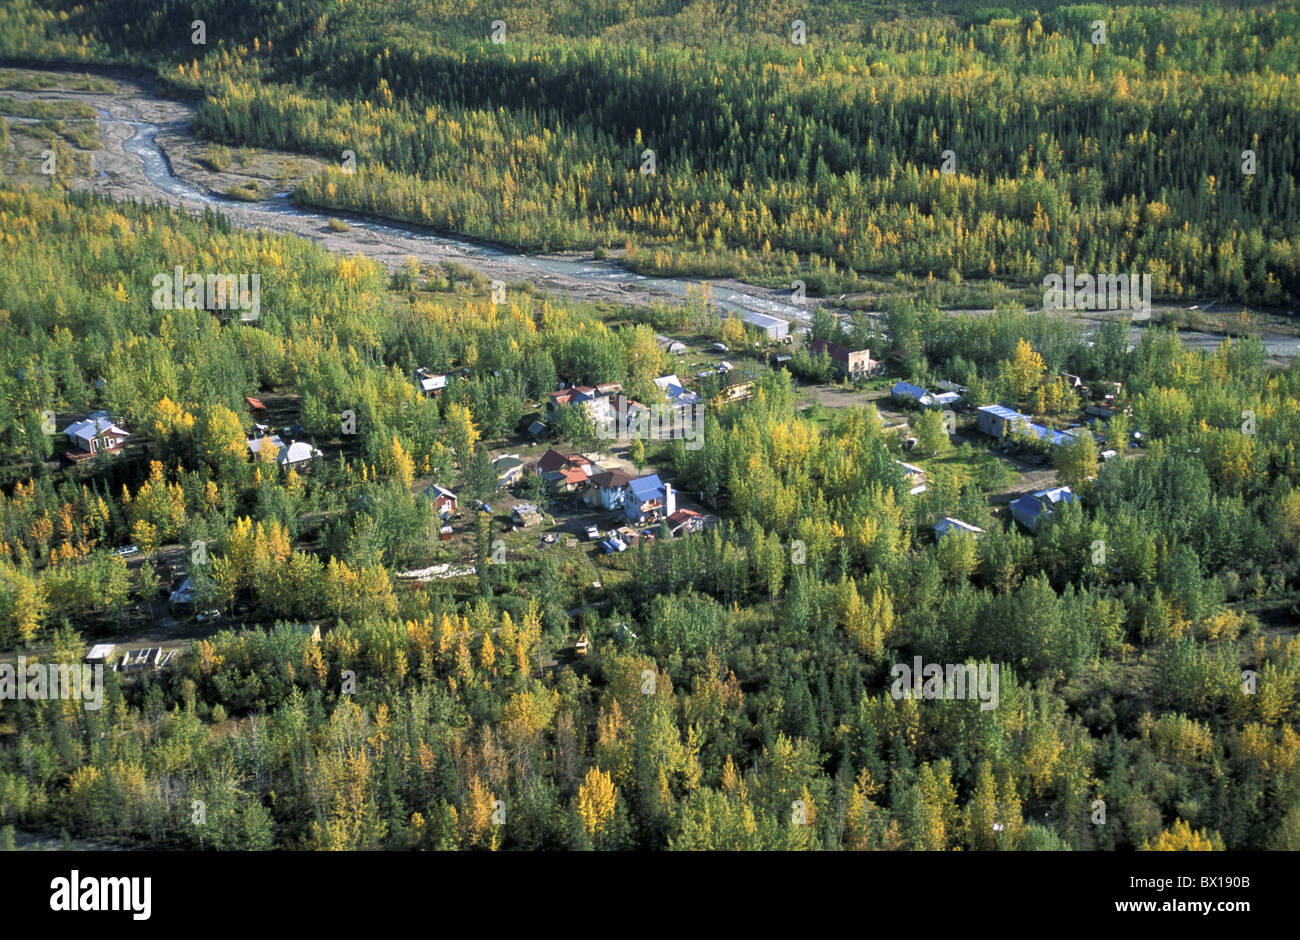 Aerial view from town Alaska McCarthy USA America United States forest village river houses autumn lands - Stock Image